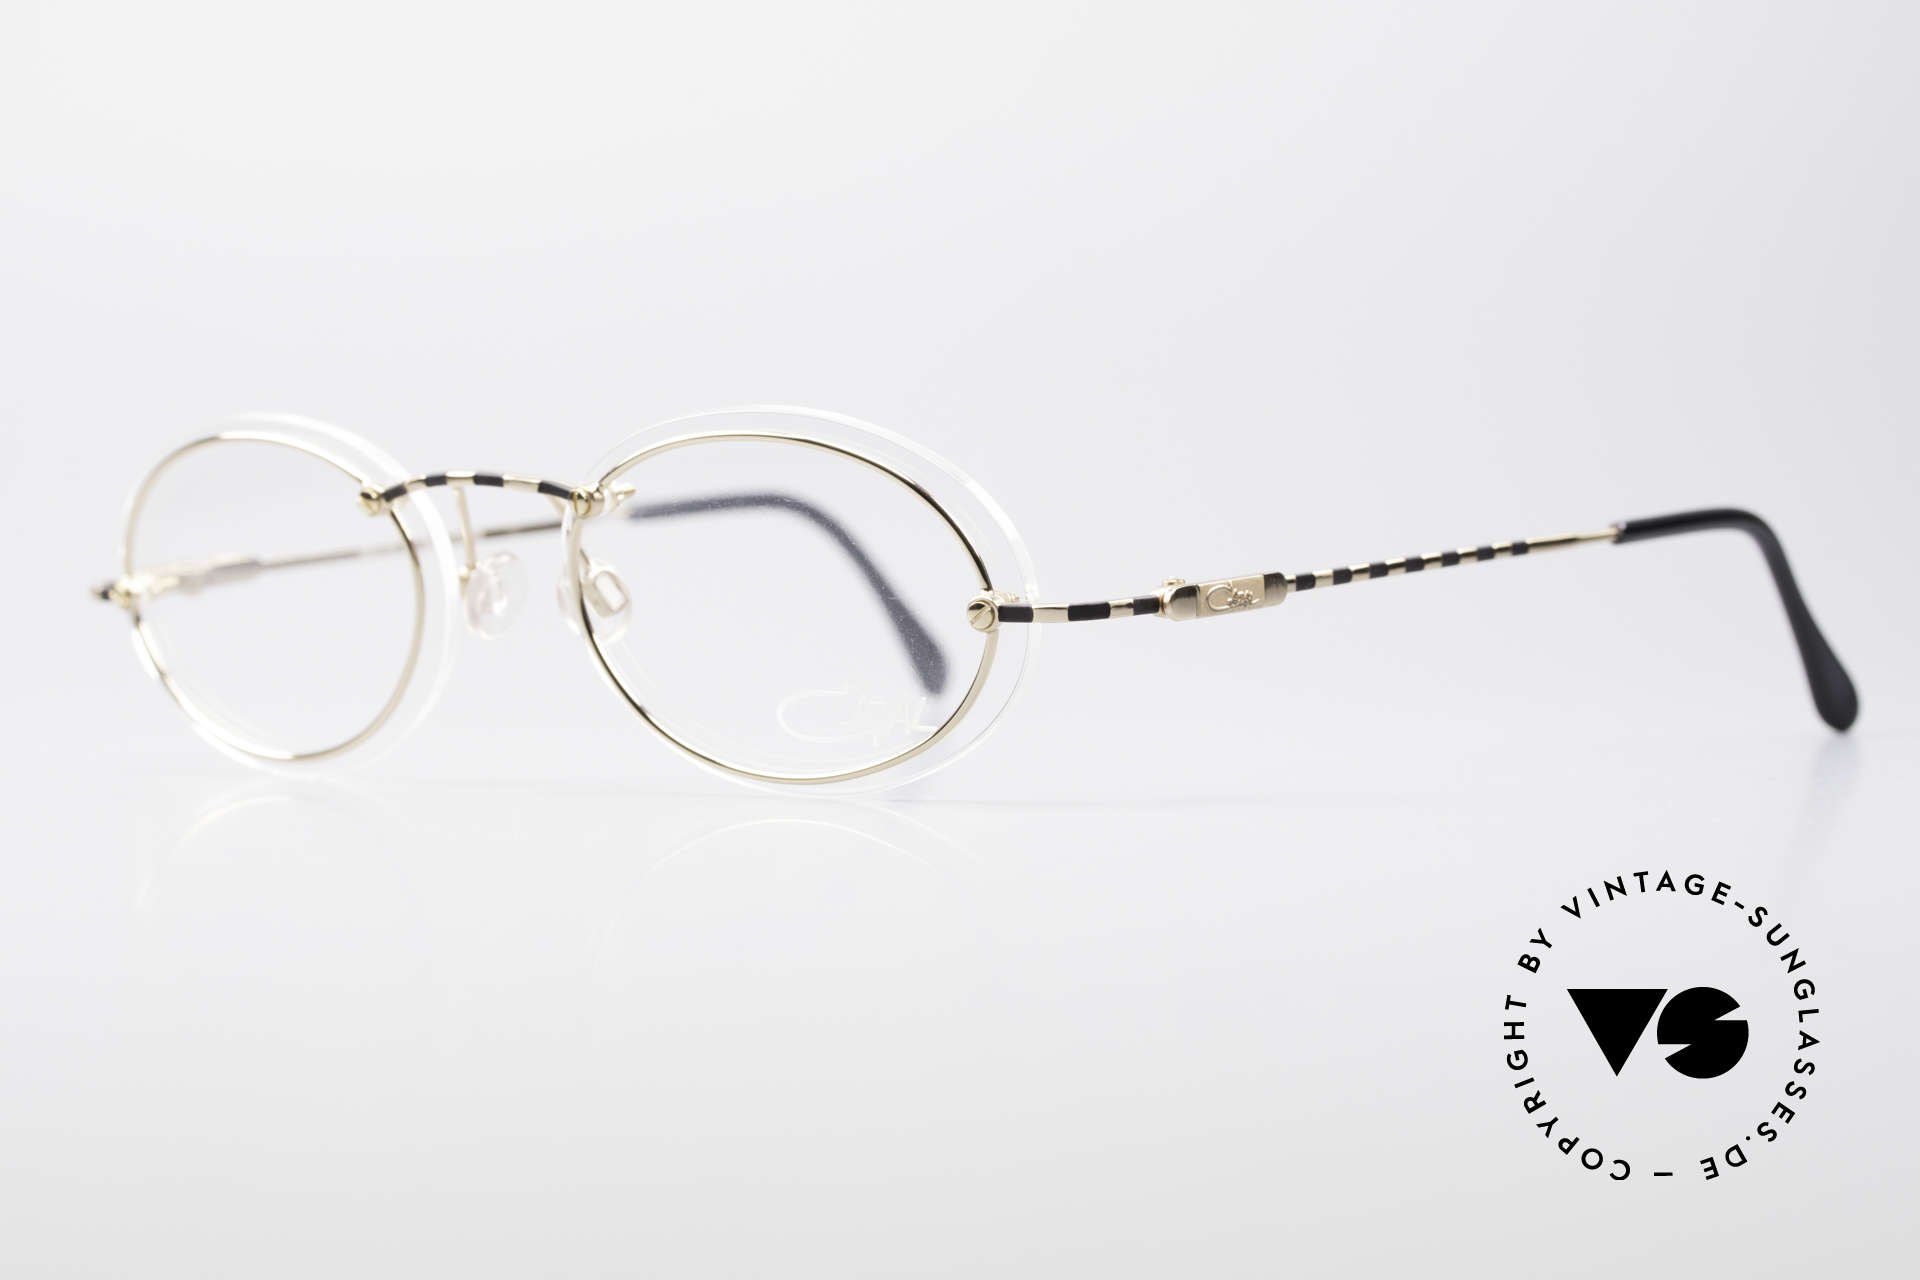 Cazal 770 90's Vintage Frame No Retro, minimalist at first glance; but truly sophisticated, Made for Men and Women